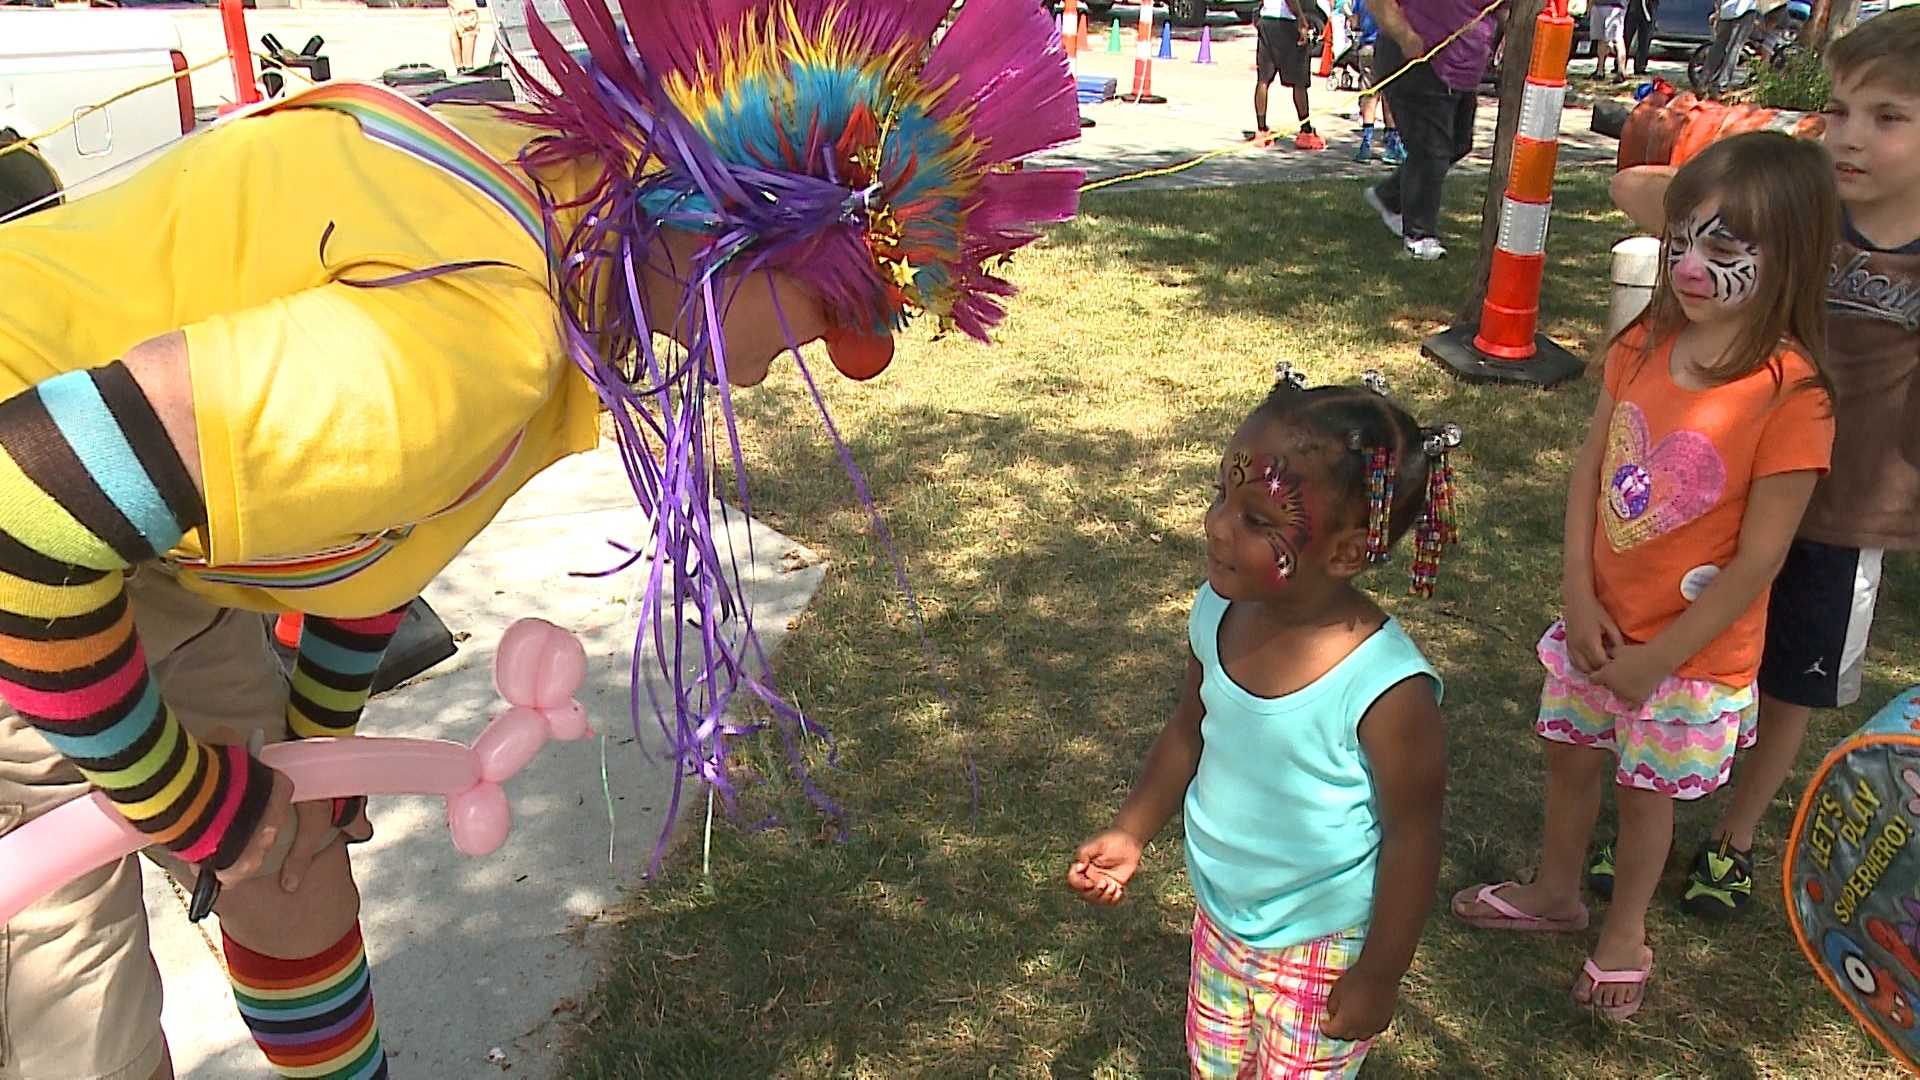 Omaha's Benson neighborhood is drawing a big crowd Saturday for its annual summer festival.